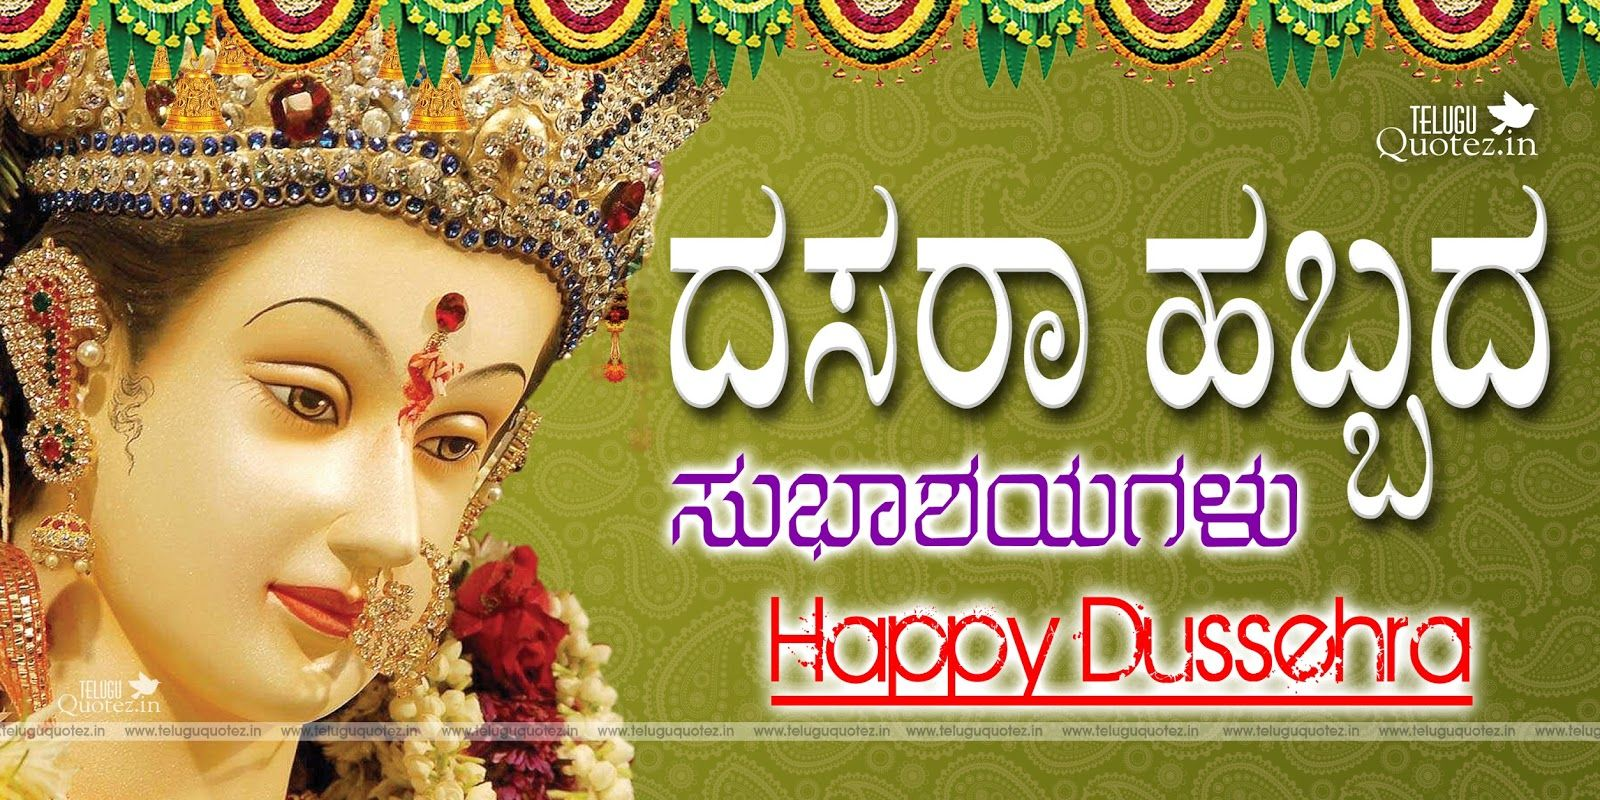 Kannada happy dussehra kavanagal quotes and wishes t m4hsunfo